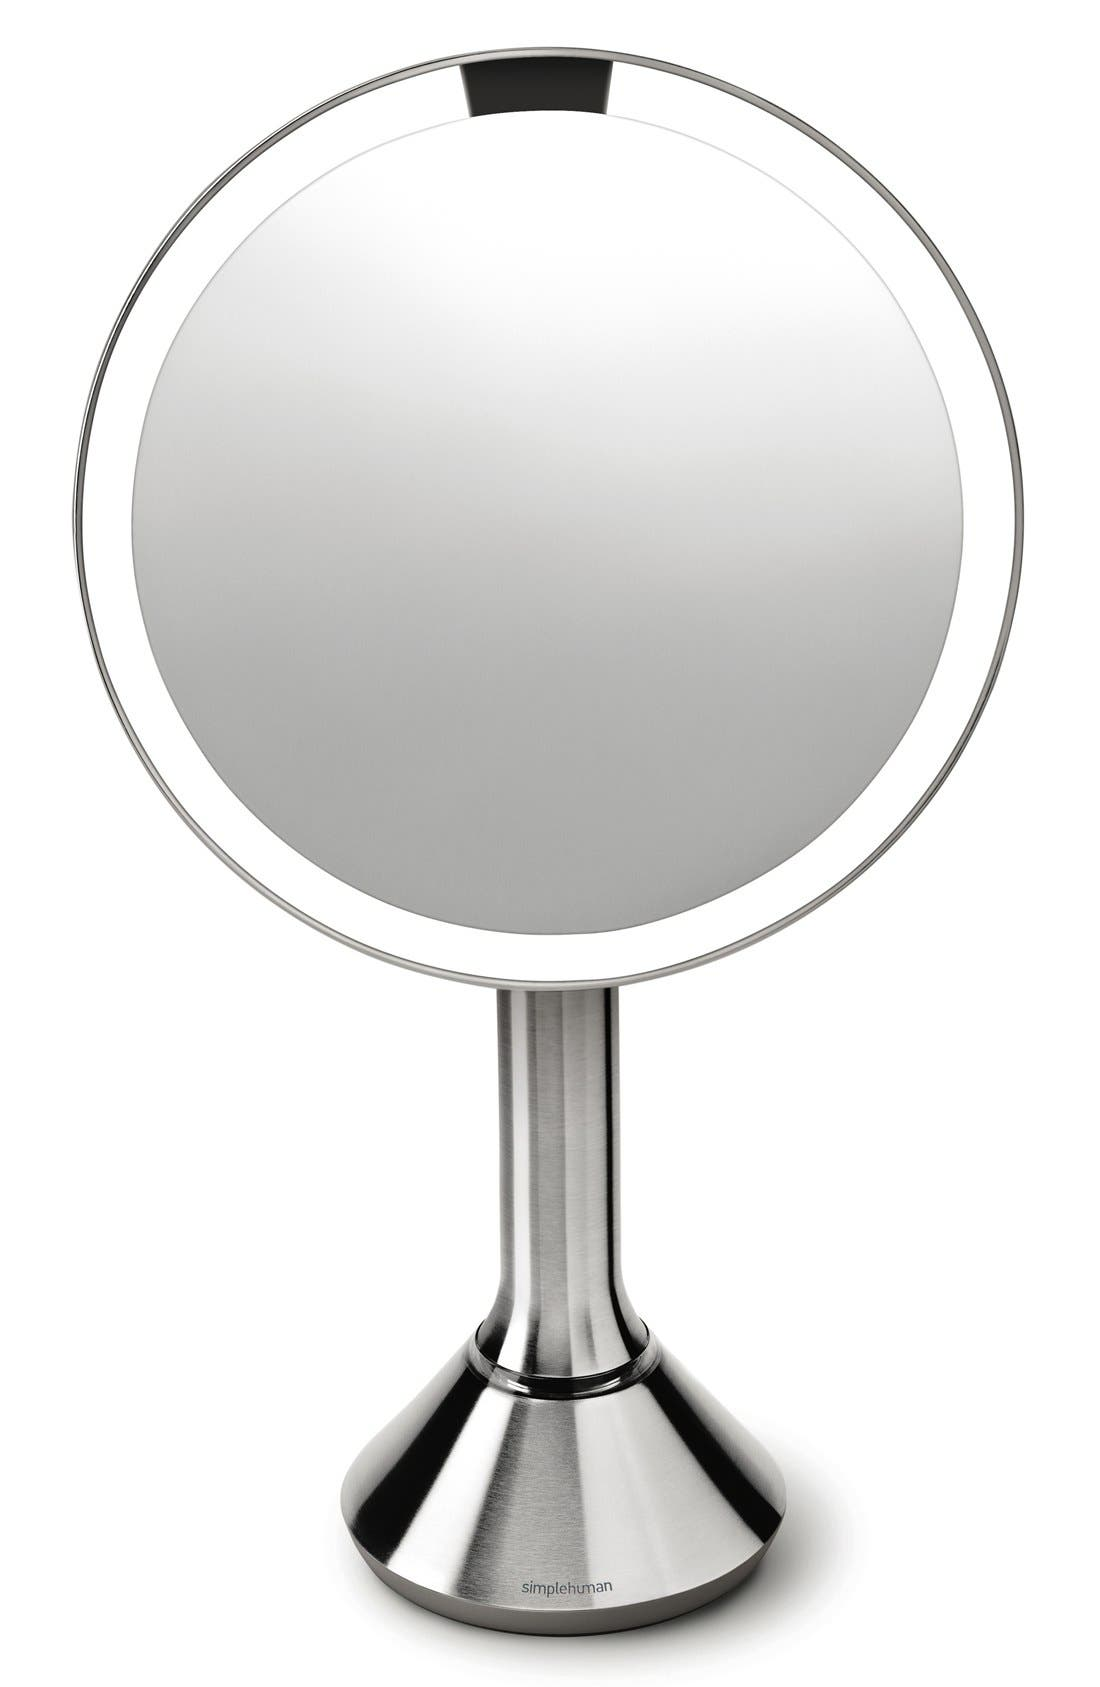 Alternate Image 3  - simplehuman Countertop Sensor Makeup Mirror (8 Inch)